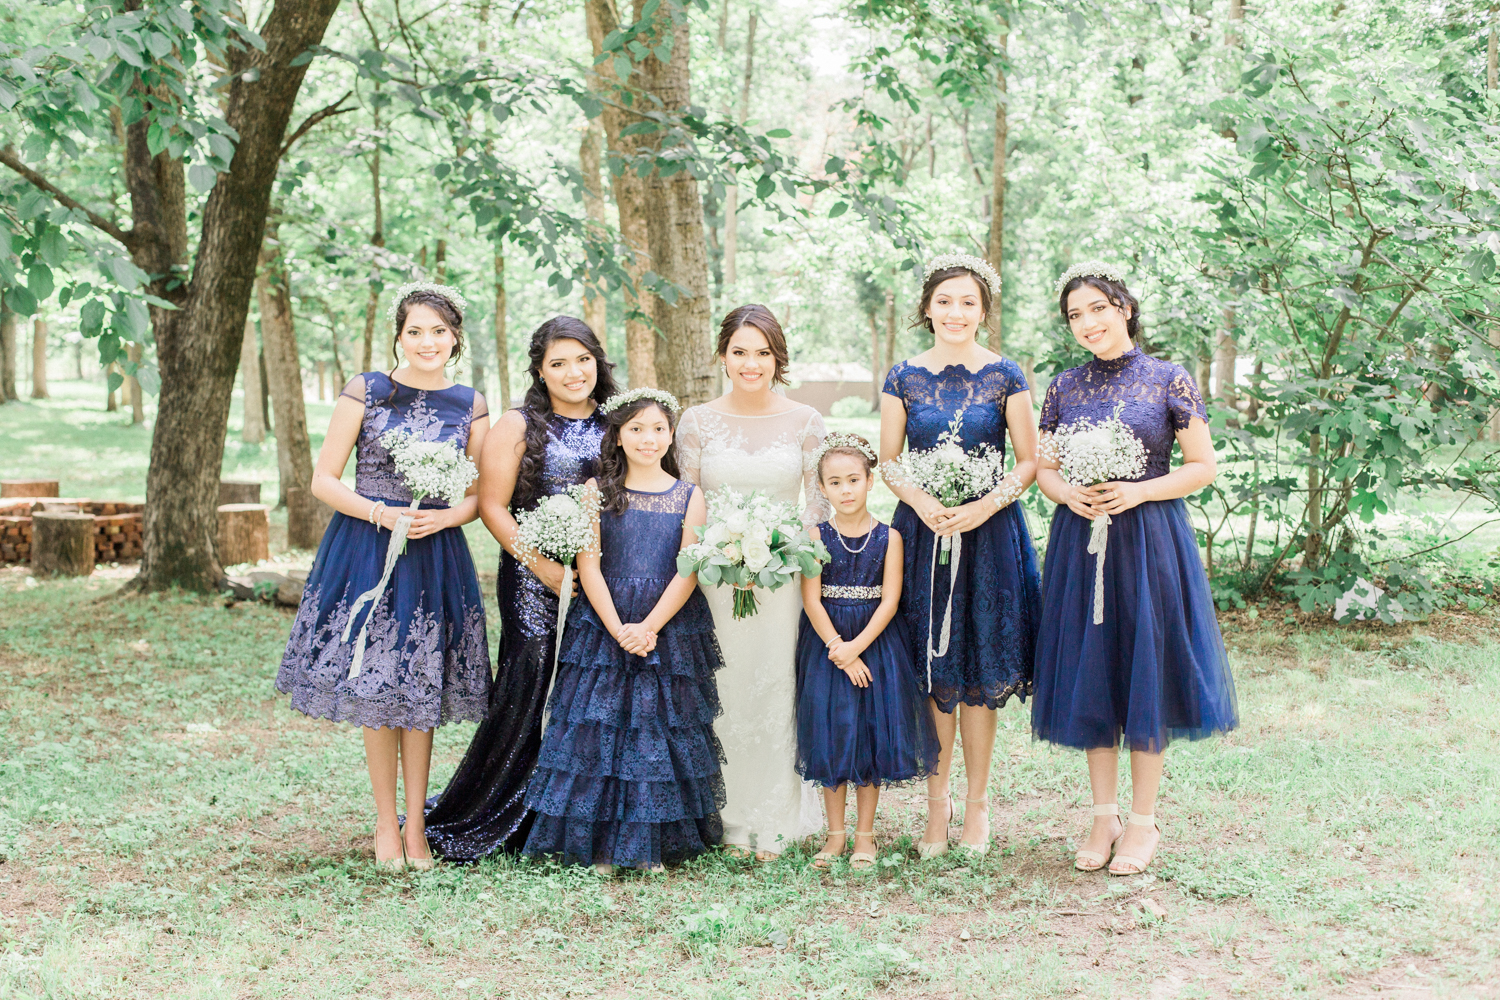 Navy blue bridesmaid dresses. Summer, outdoor, barn wedding in north Georgia at Hays McDonald Farm in Jefferson, Georgia. Photo by Kesia Marie Photography - Fine Art Wedding Photographer.